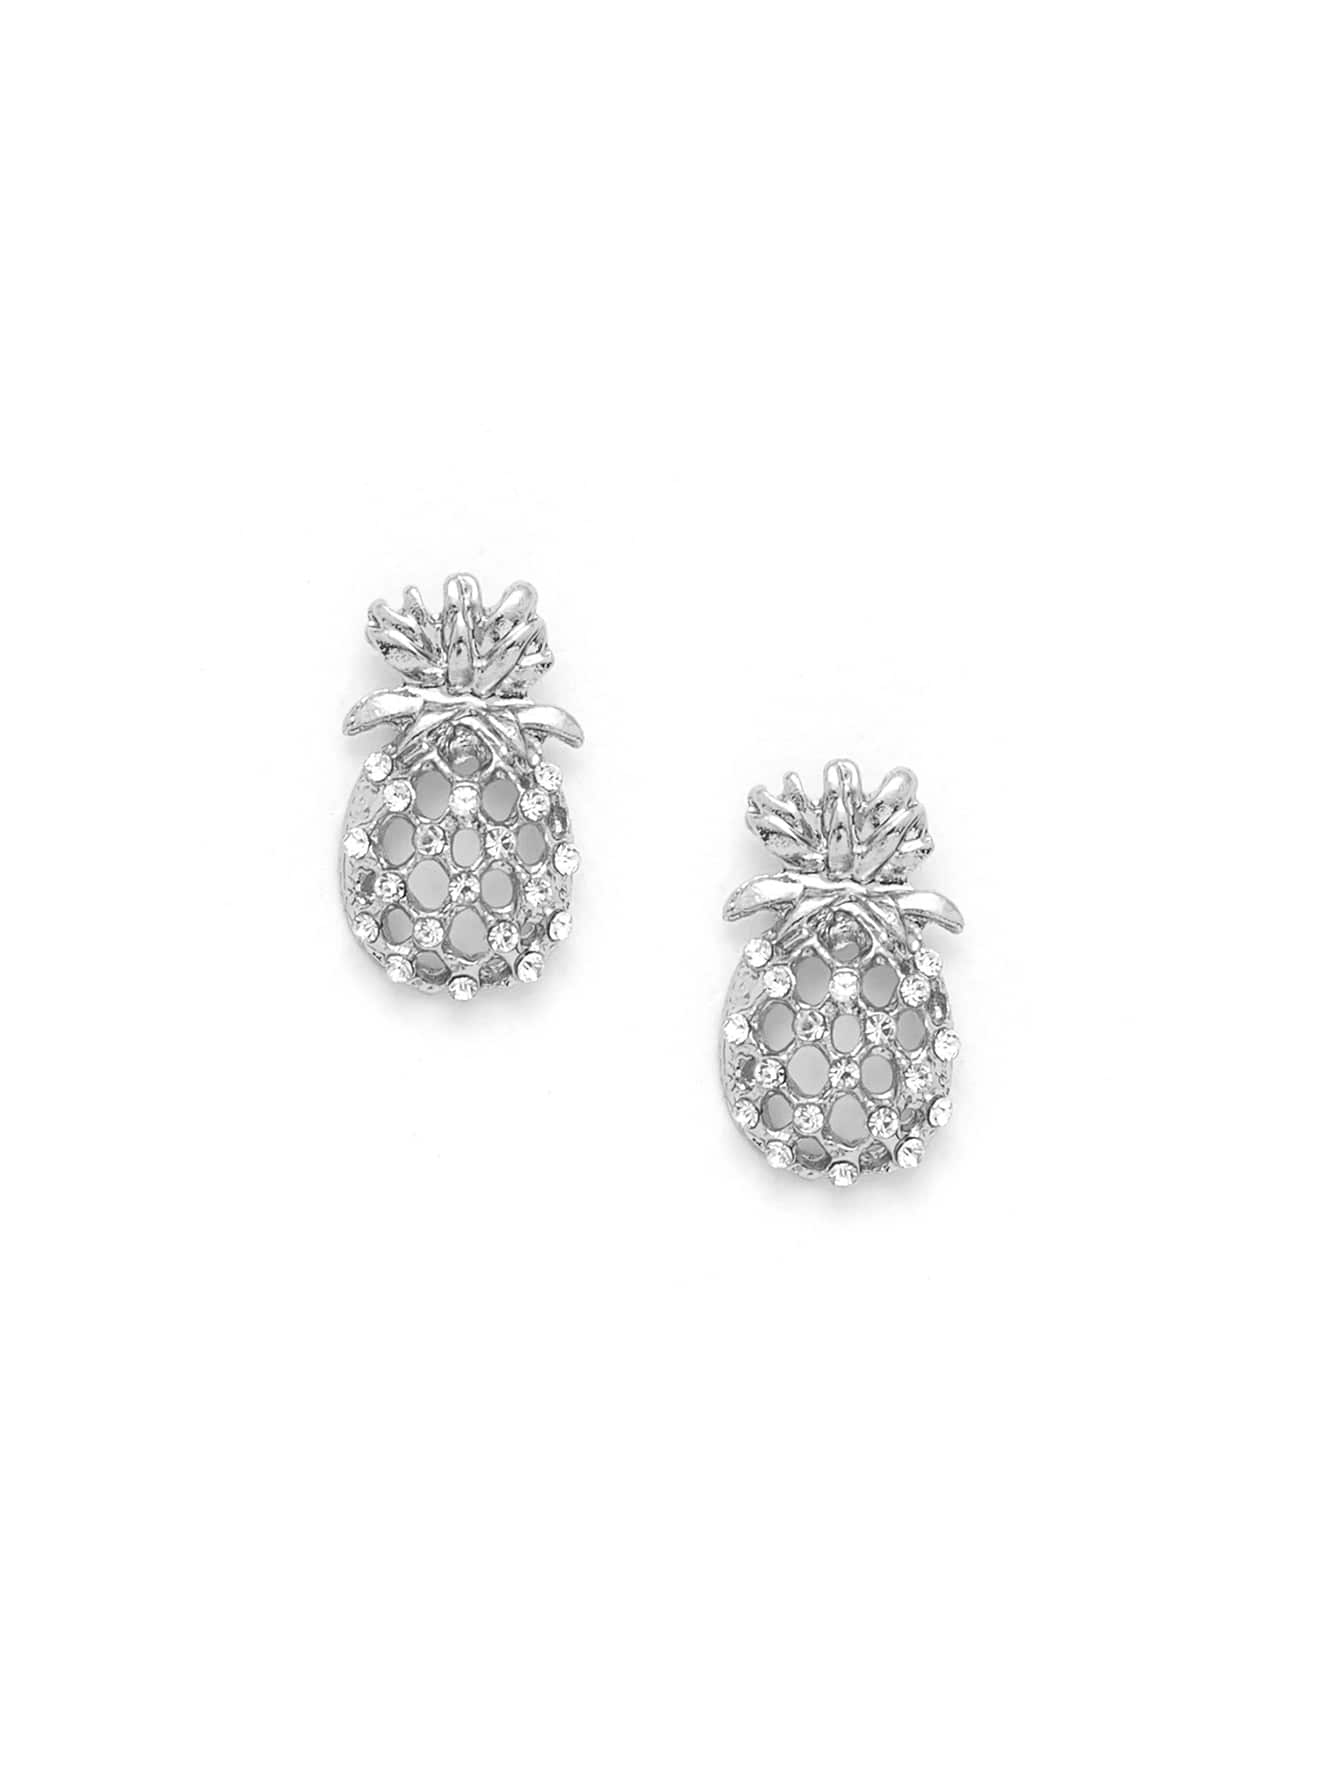 все цены на Hollow Pineapple Stud Earrings онлайн